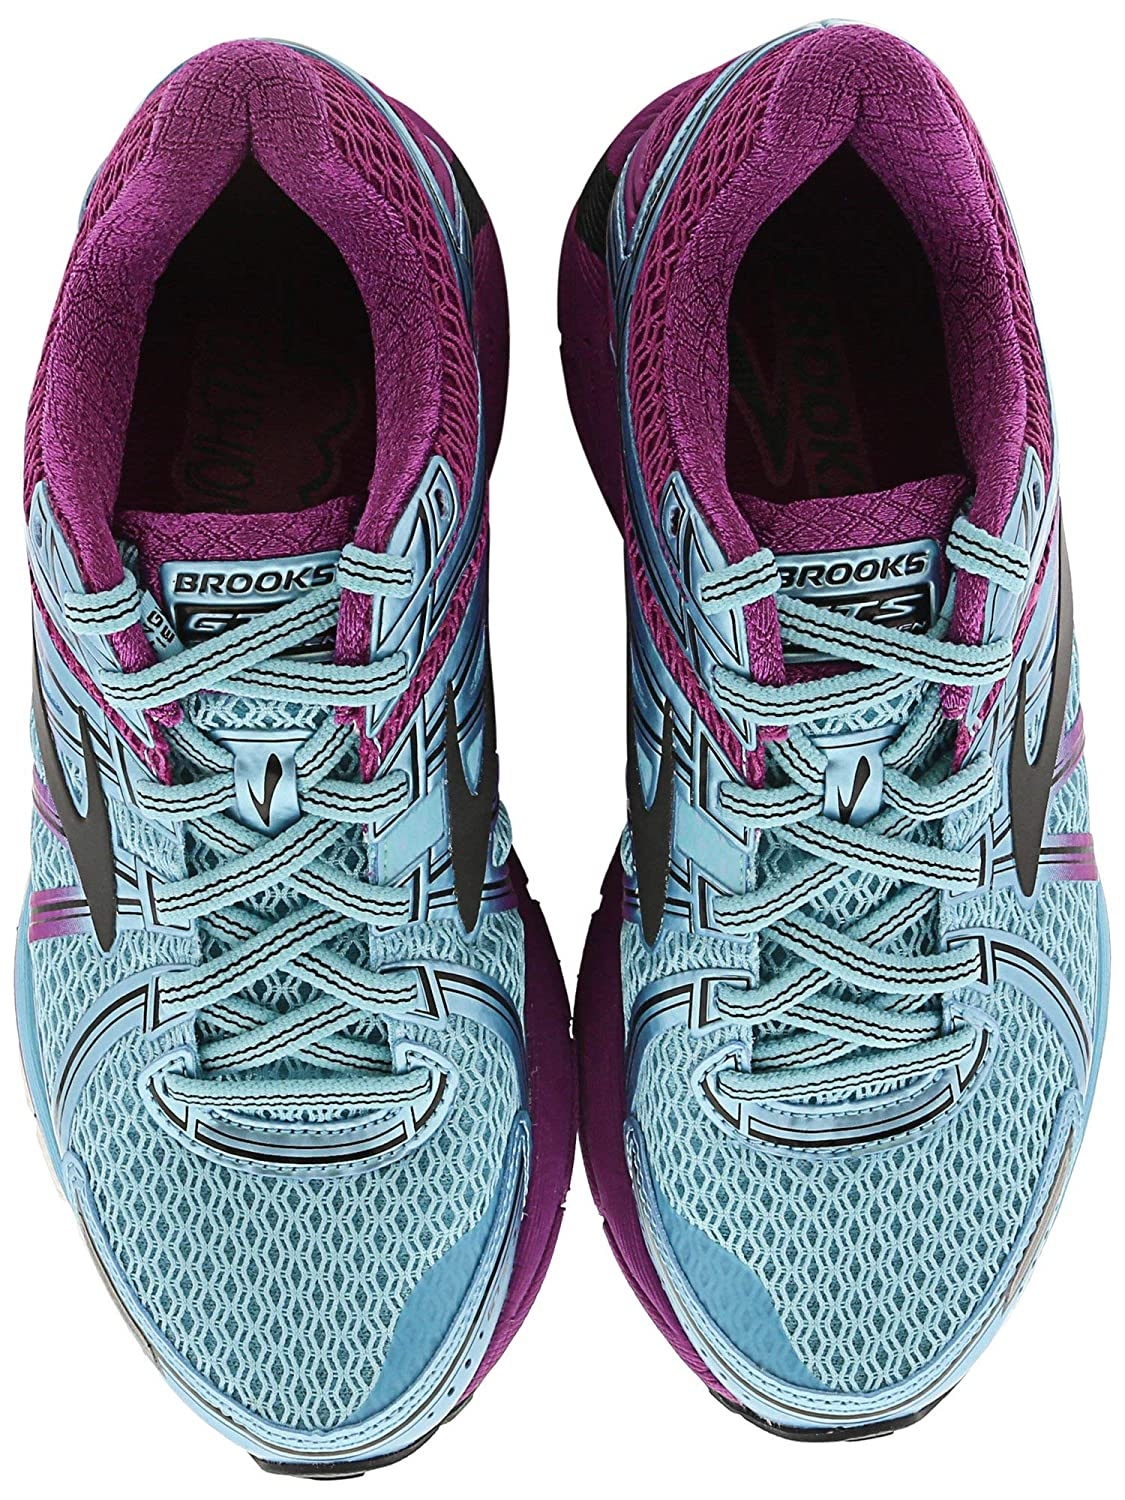 2f917b742073f Brooks Women s Adrenaline GTS 17 Iceland Blue Hollyhock Black Athletic Shoe   Brooks  Amazon.in  Shoes   Handbags